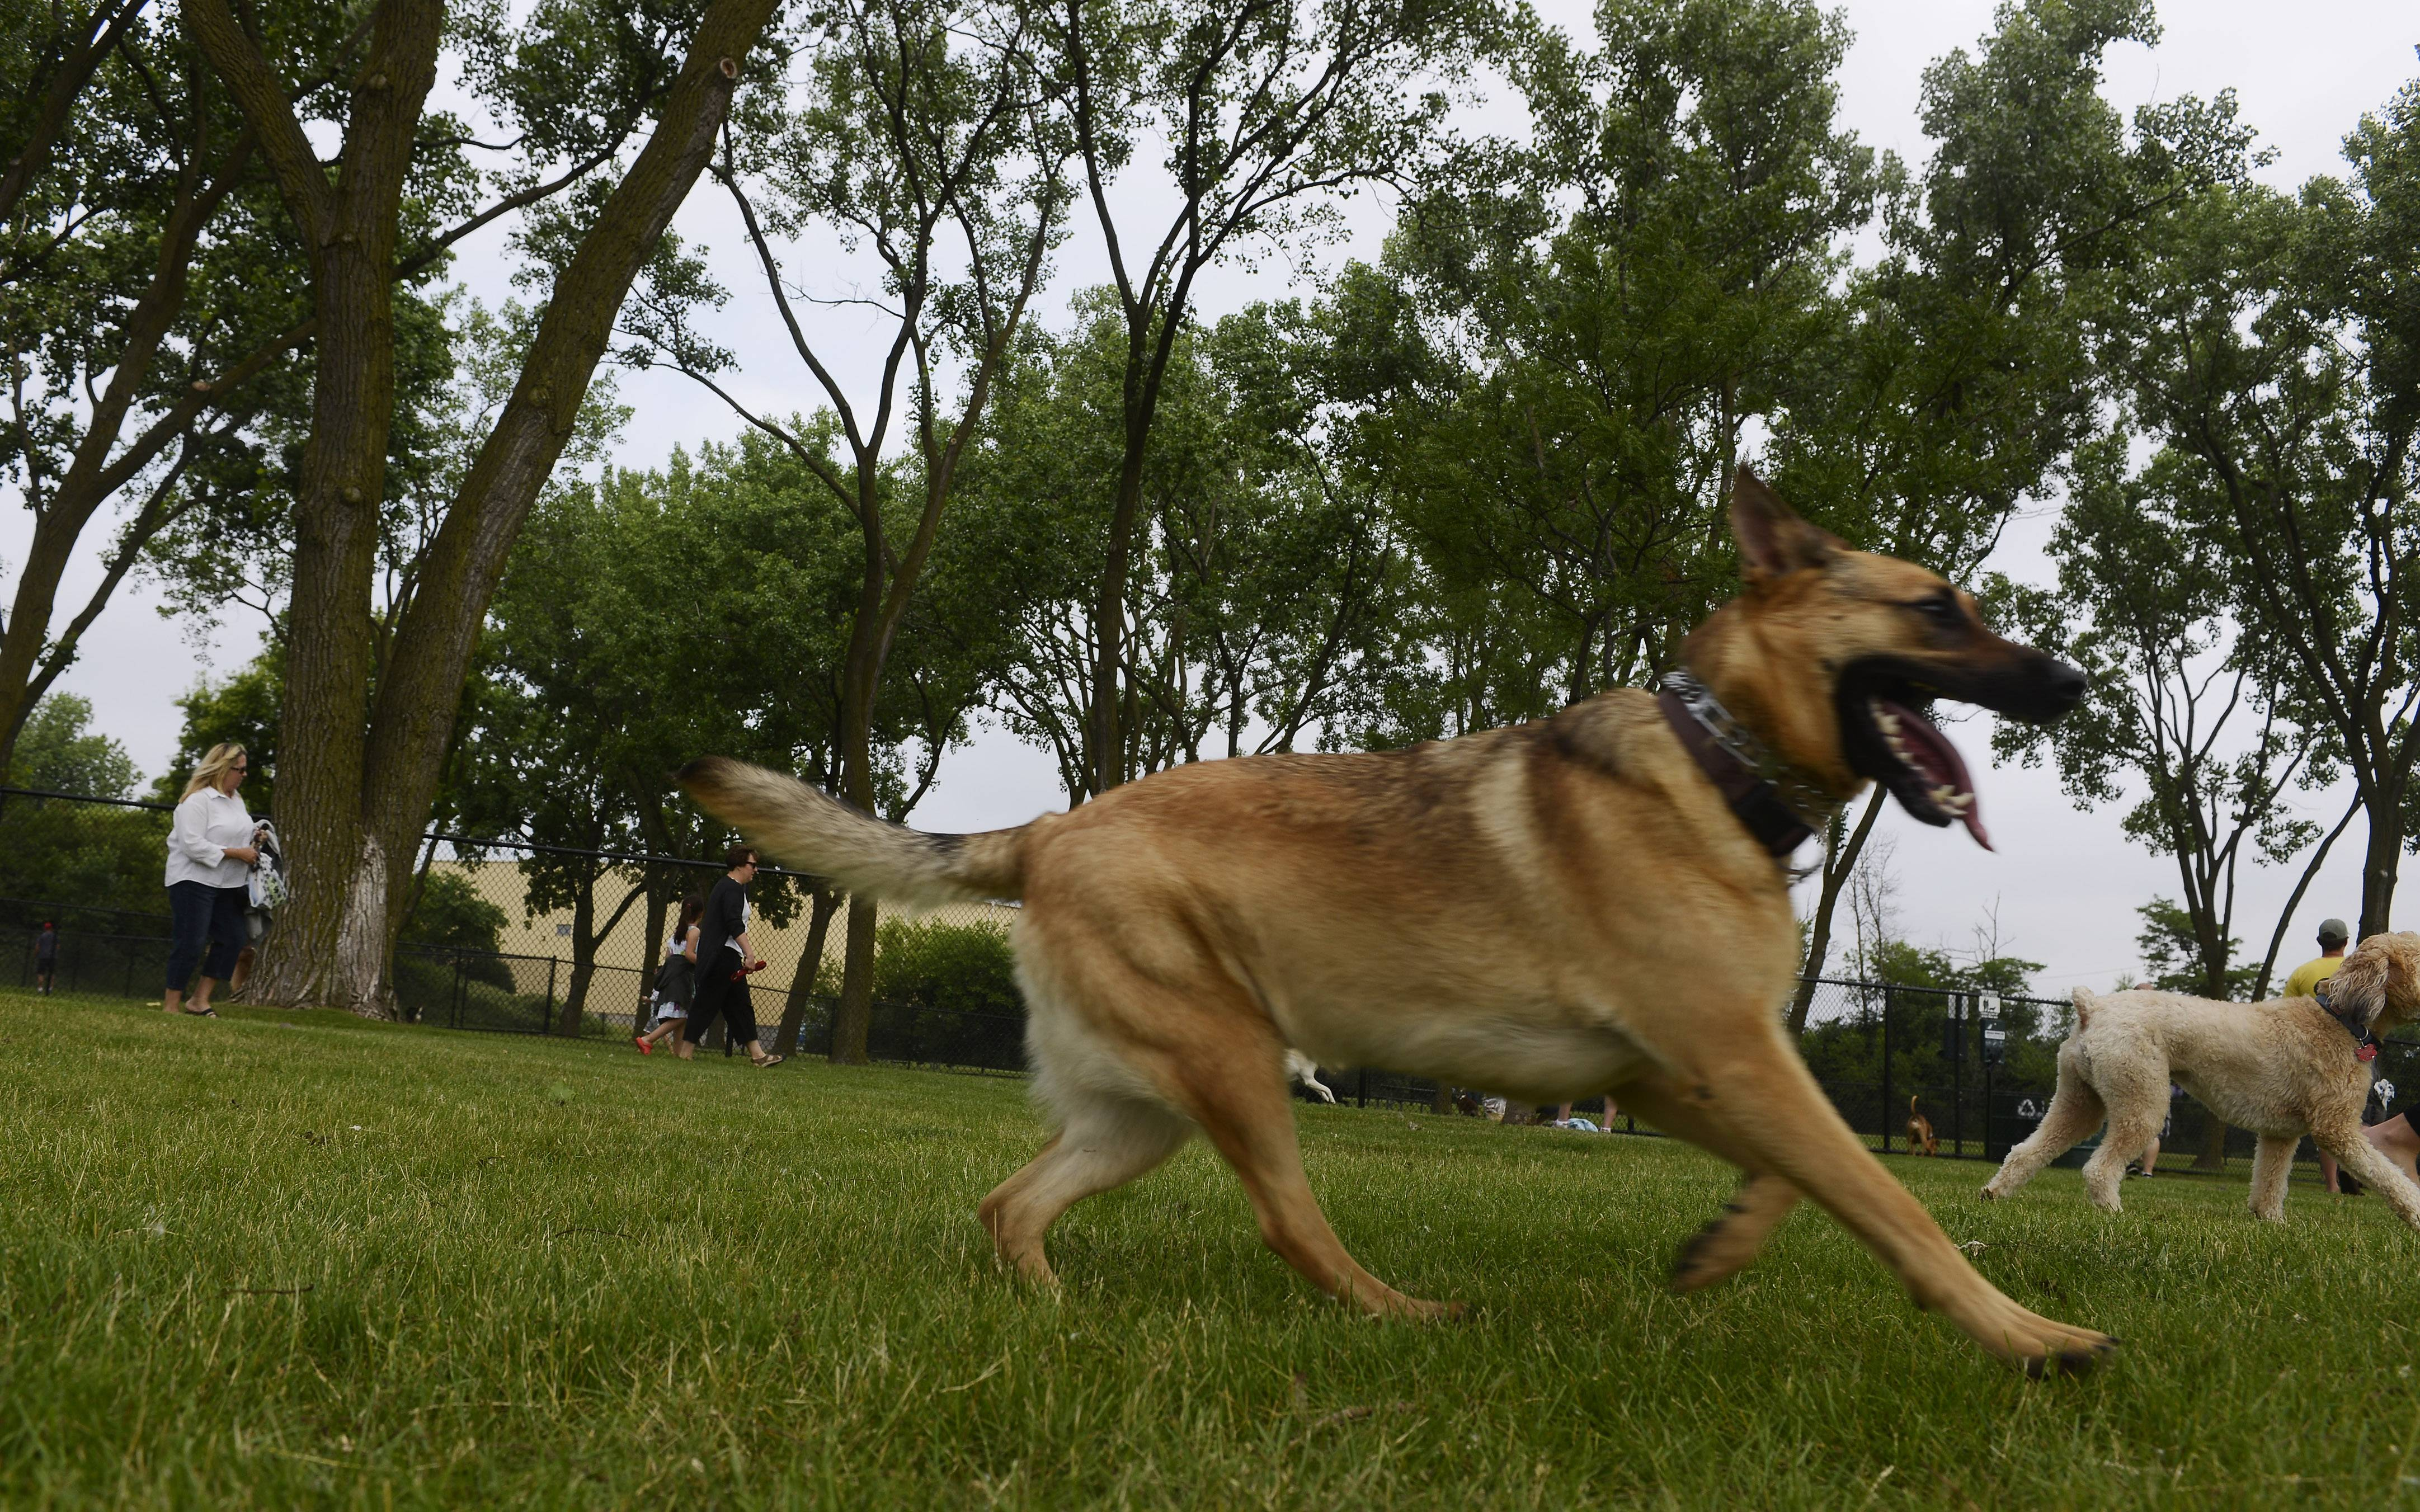 Dogs run in the open space of the Canine Commons dog park at Melas Park in Mount Prospect.